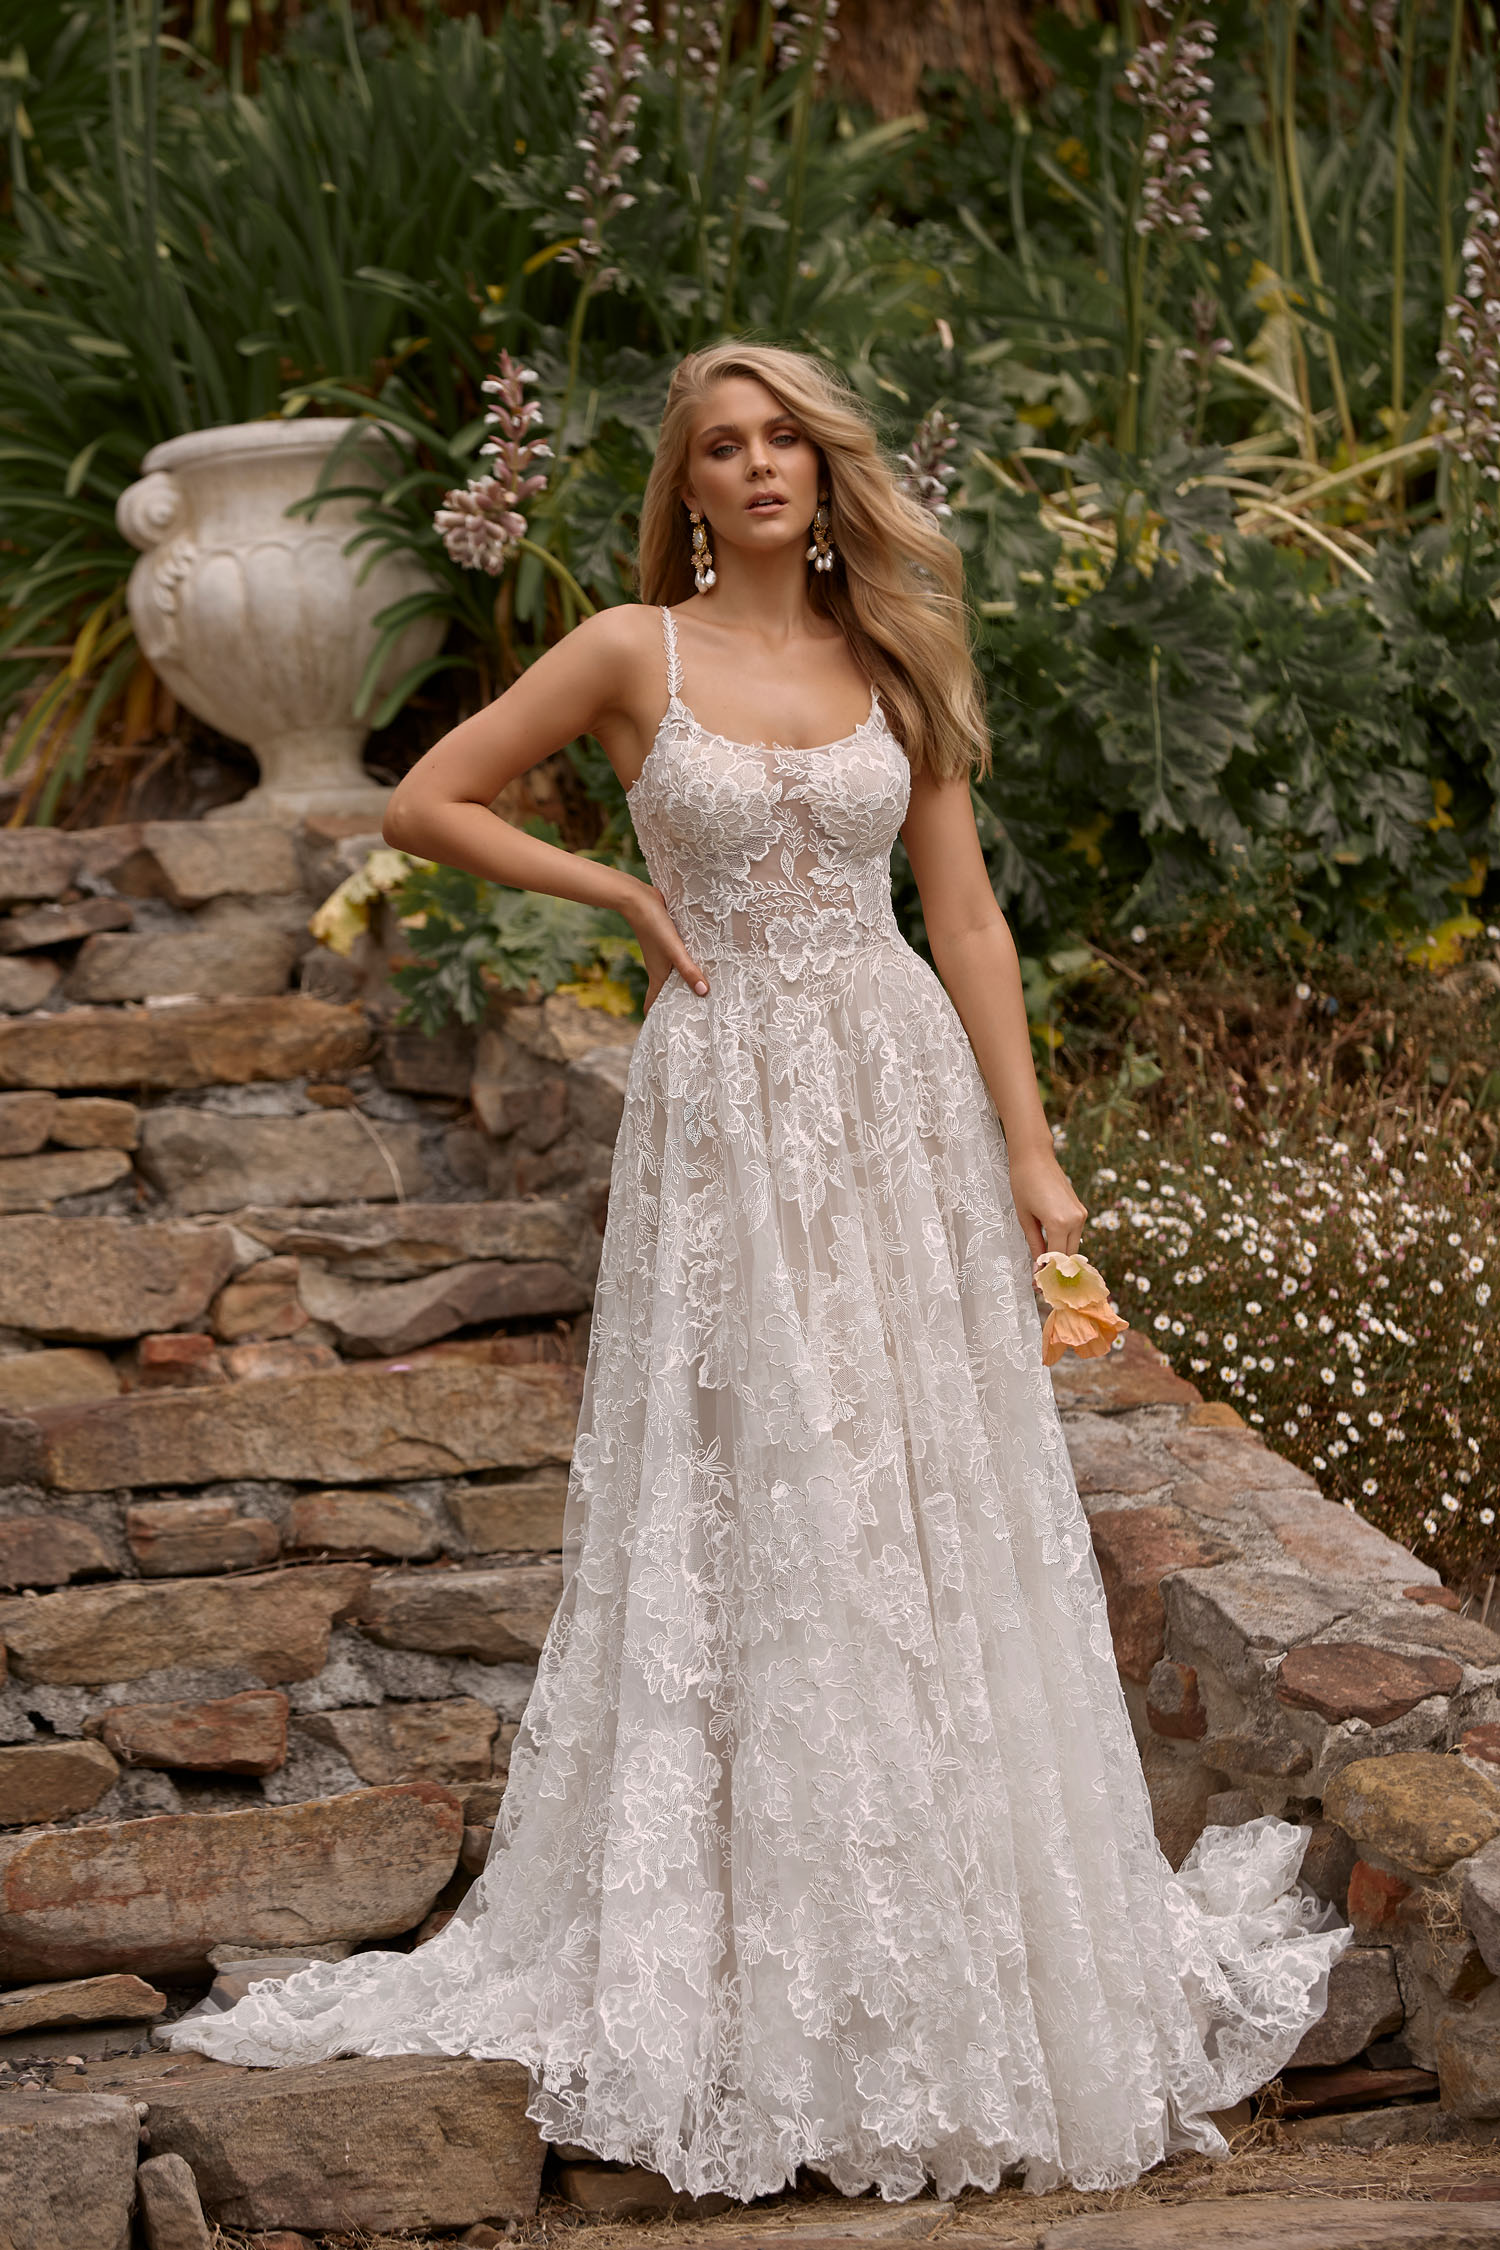 CLEO-ML20026-FULL-LENGTH-A-LINE-FLORAL-LACE-GOWN-SCOOP-NECKLINE-THIN-STRAPS-SCOOP-BACK-ZIPPER-AND-BUTTON-CLOSURE-WEDDING-DRESS-MADI-LANE-BRIDAL-1